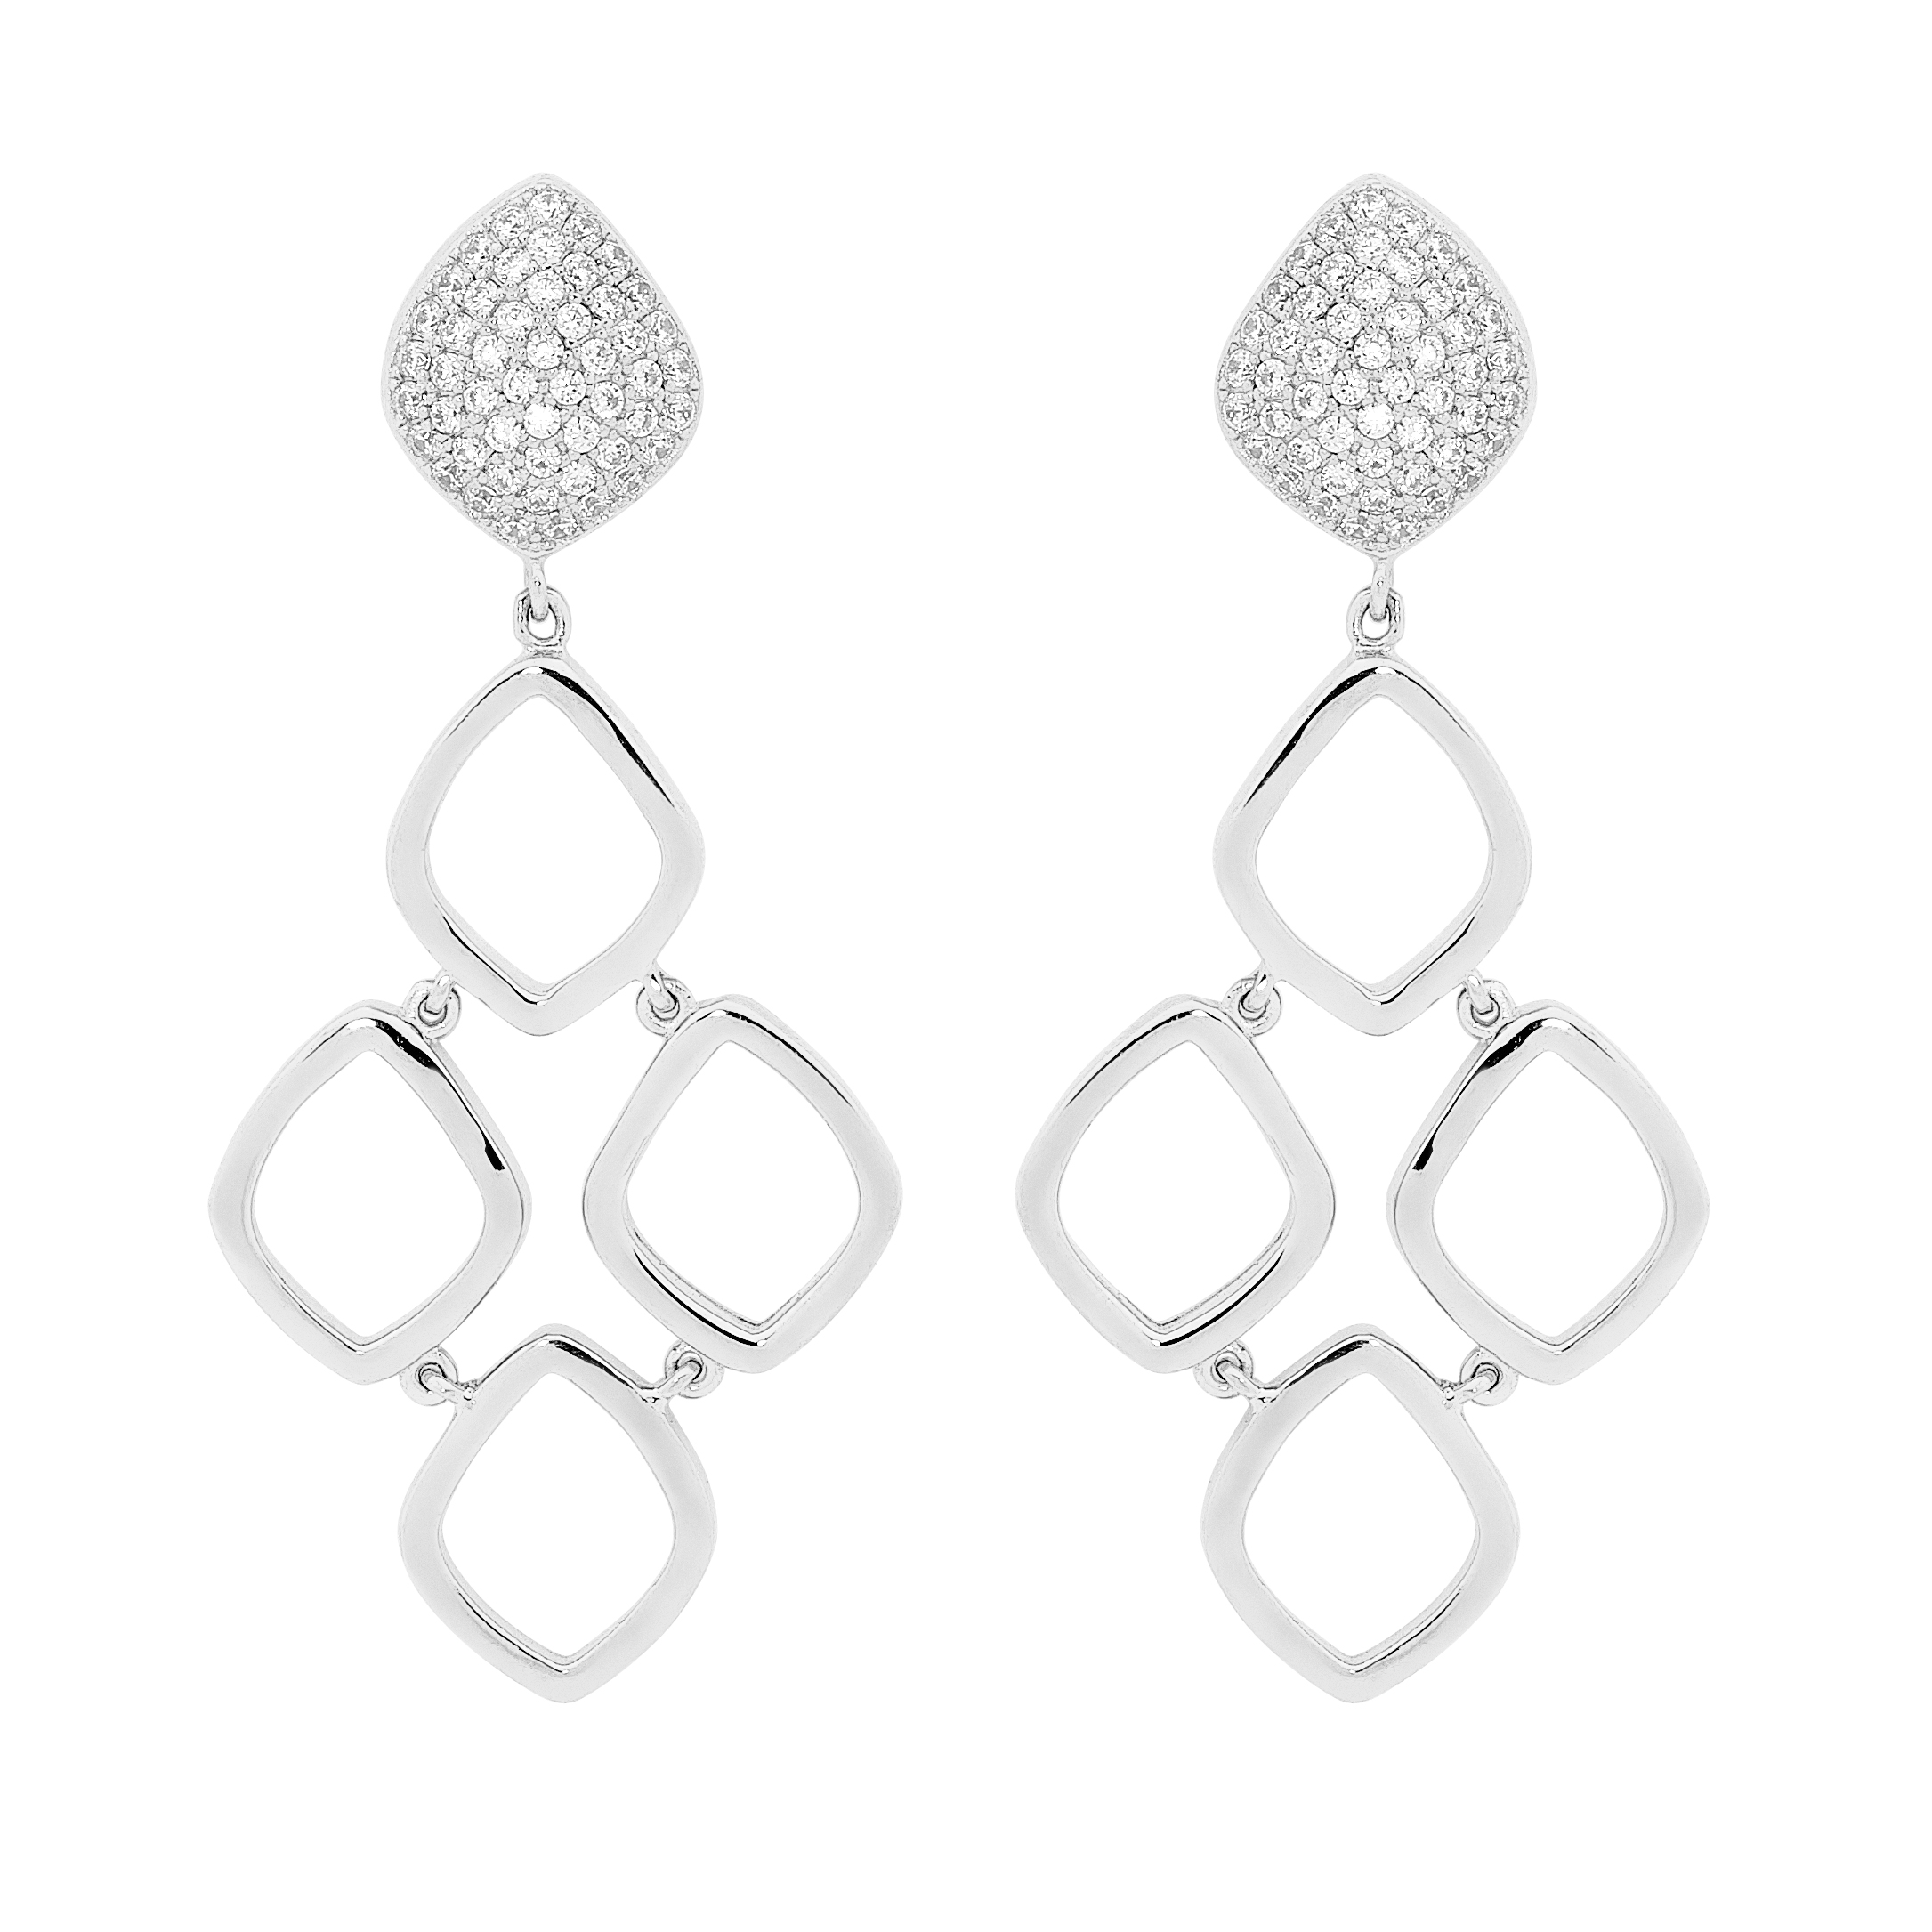 Win A Stunning Pair Of Earrings From The Hamptons Collection By Georgini, Valued At R2 999!